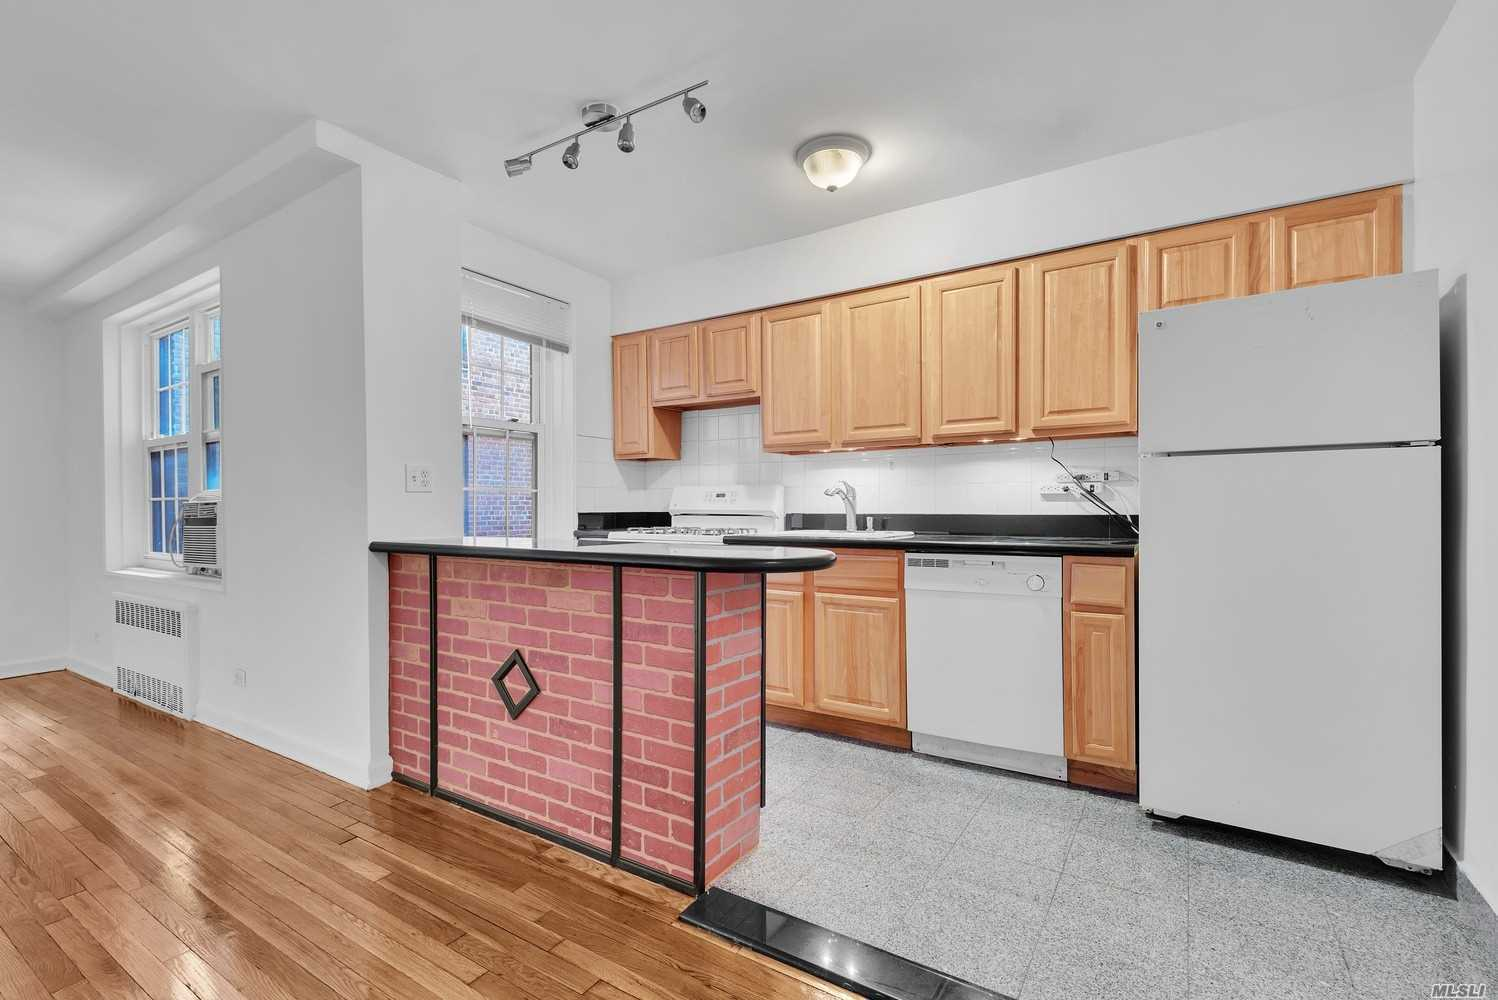 Pristine 2Br/1Ba In Close Proximity To F The Train. Nicely Polished Hardwood Floors, The Open Kitchen Features Granite Counter Tops, Dishwasher And A Breakfast Bar With Additional Storage. Windows In Every Room. Plenty Of Closets. Live In Super, Laundry In Building, Video Intercom, Wait List For Garage Parking.